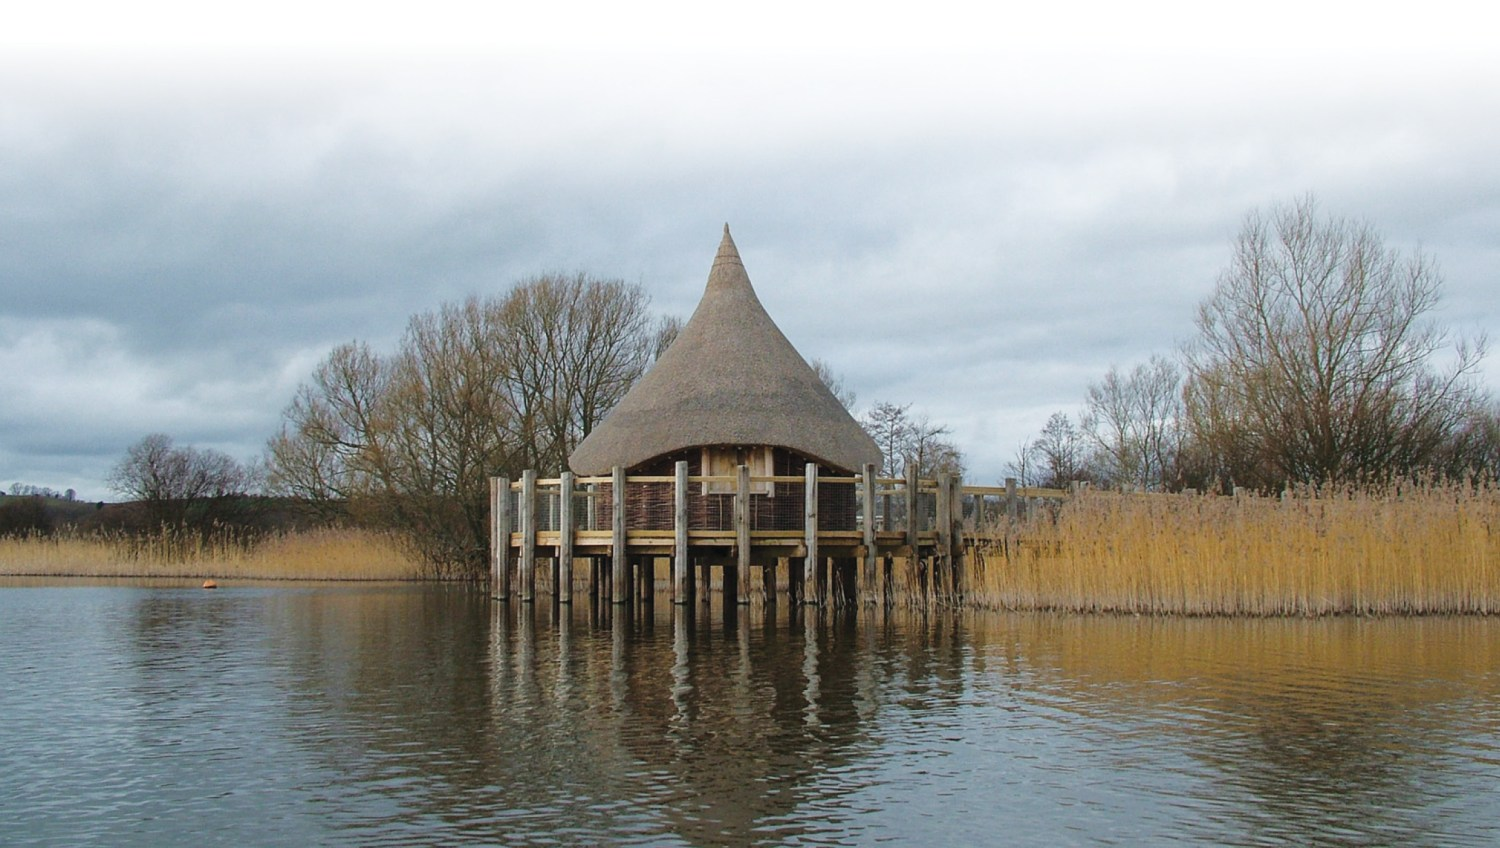 below The Welsh Crannog Centre opened in 2004 on the north side of the lake, with a viewing platform and information on the lake's history, folklore, flora, and fauna. Its circular form is based on a 19th-century depiction of a Scottish site. It is now available as a wedding venue!